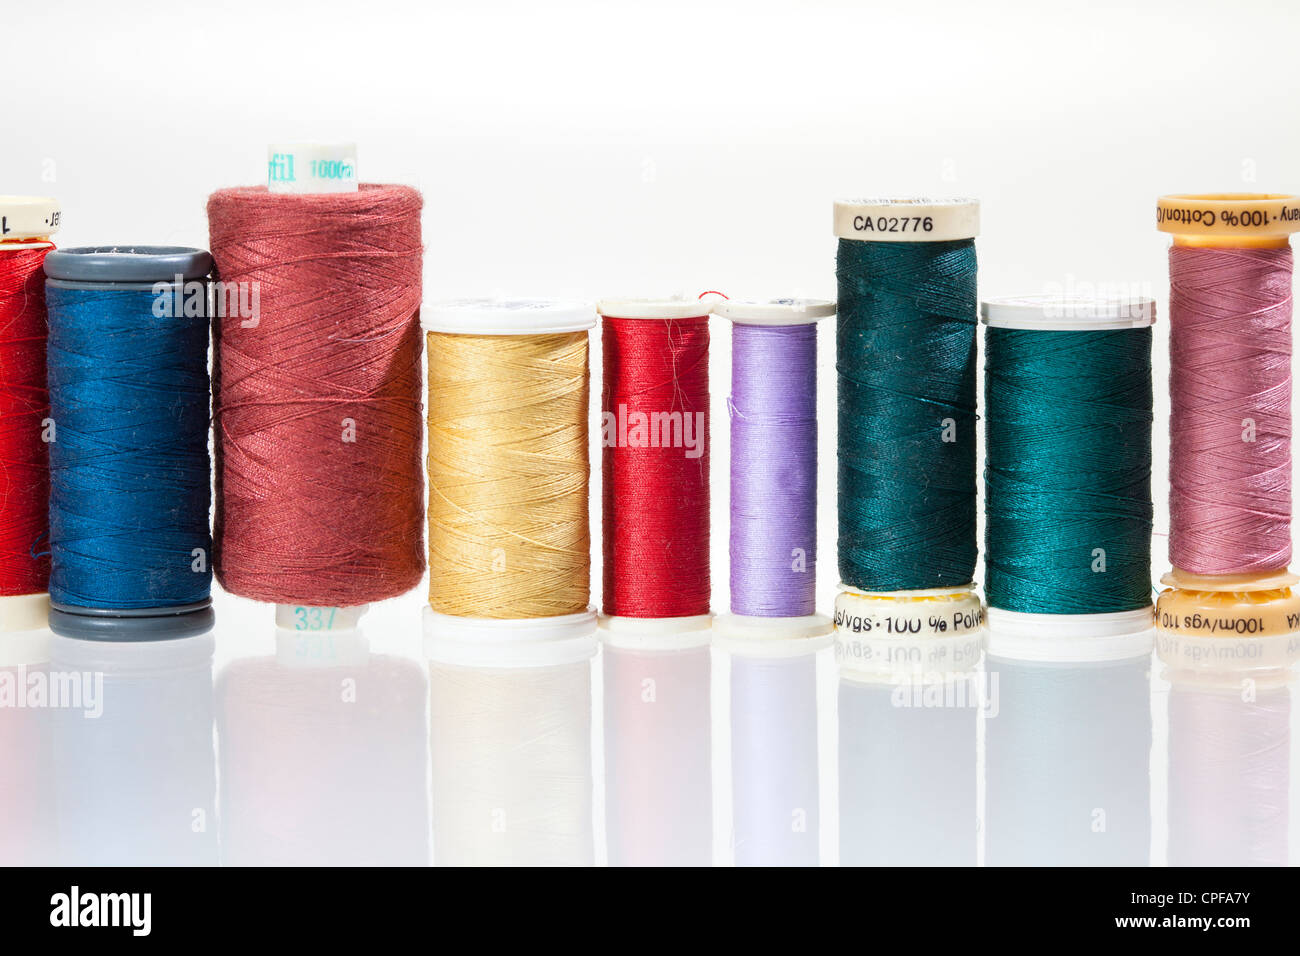 Sewing threads on bobbins in different colours - Stock Image